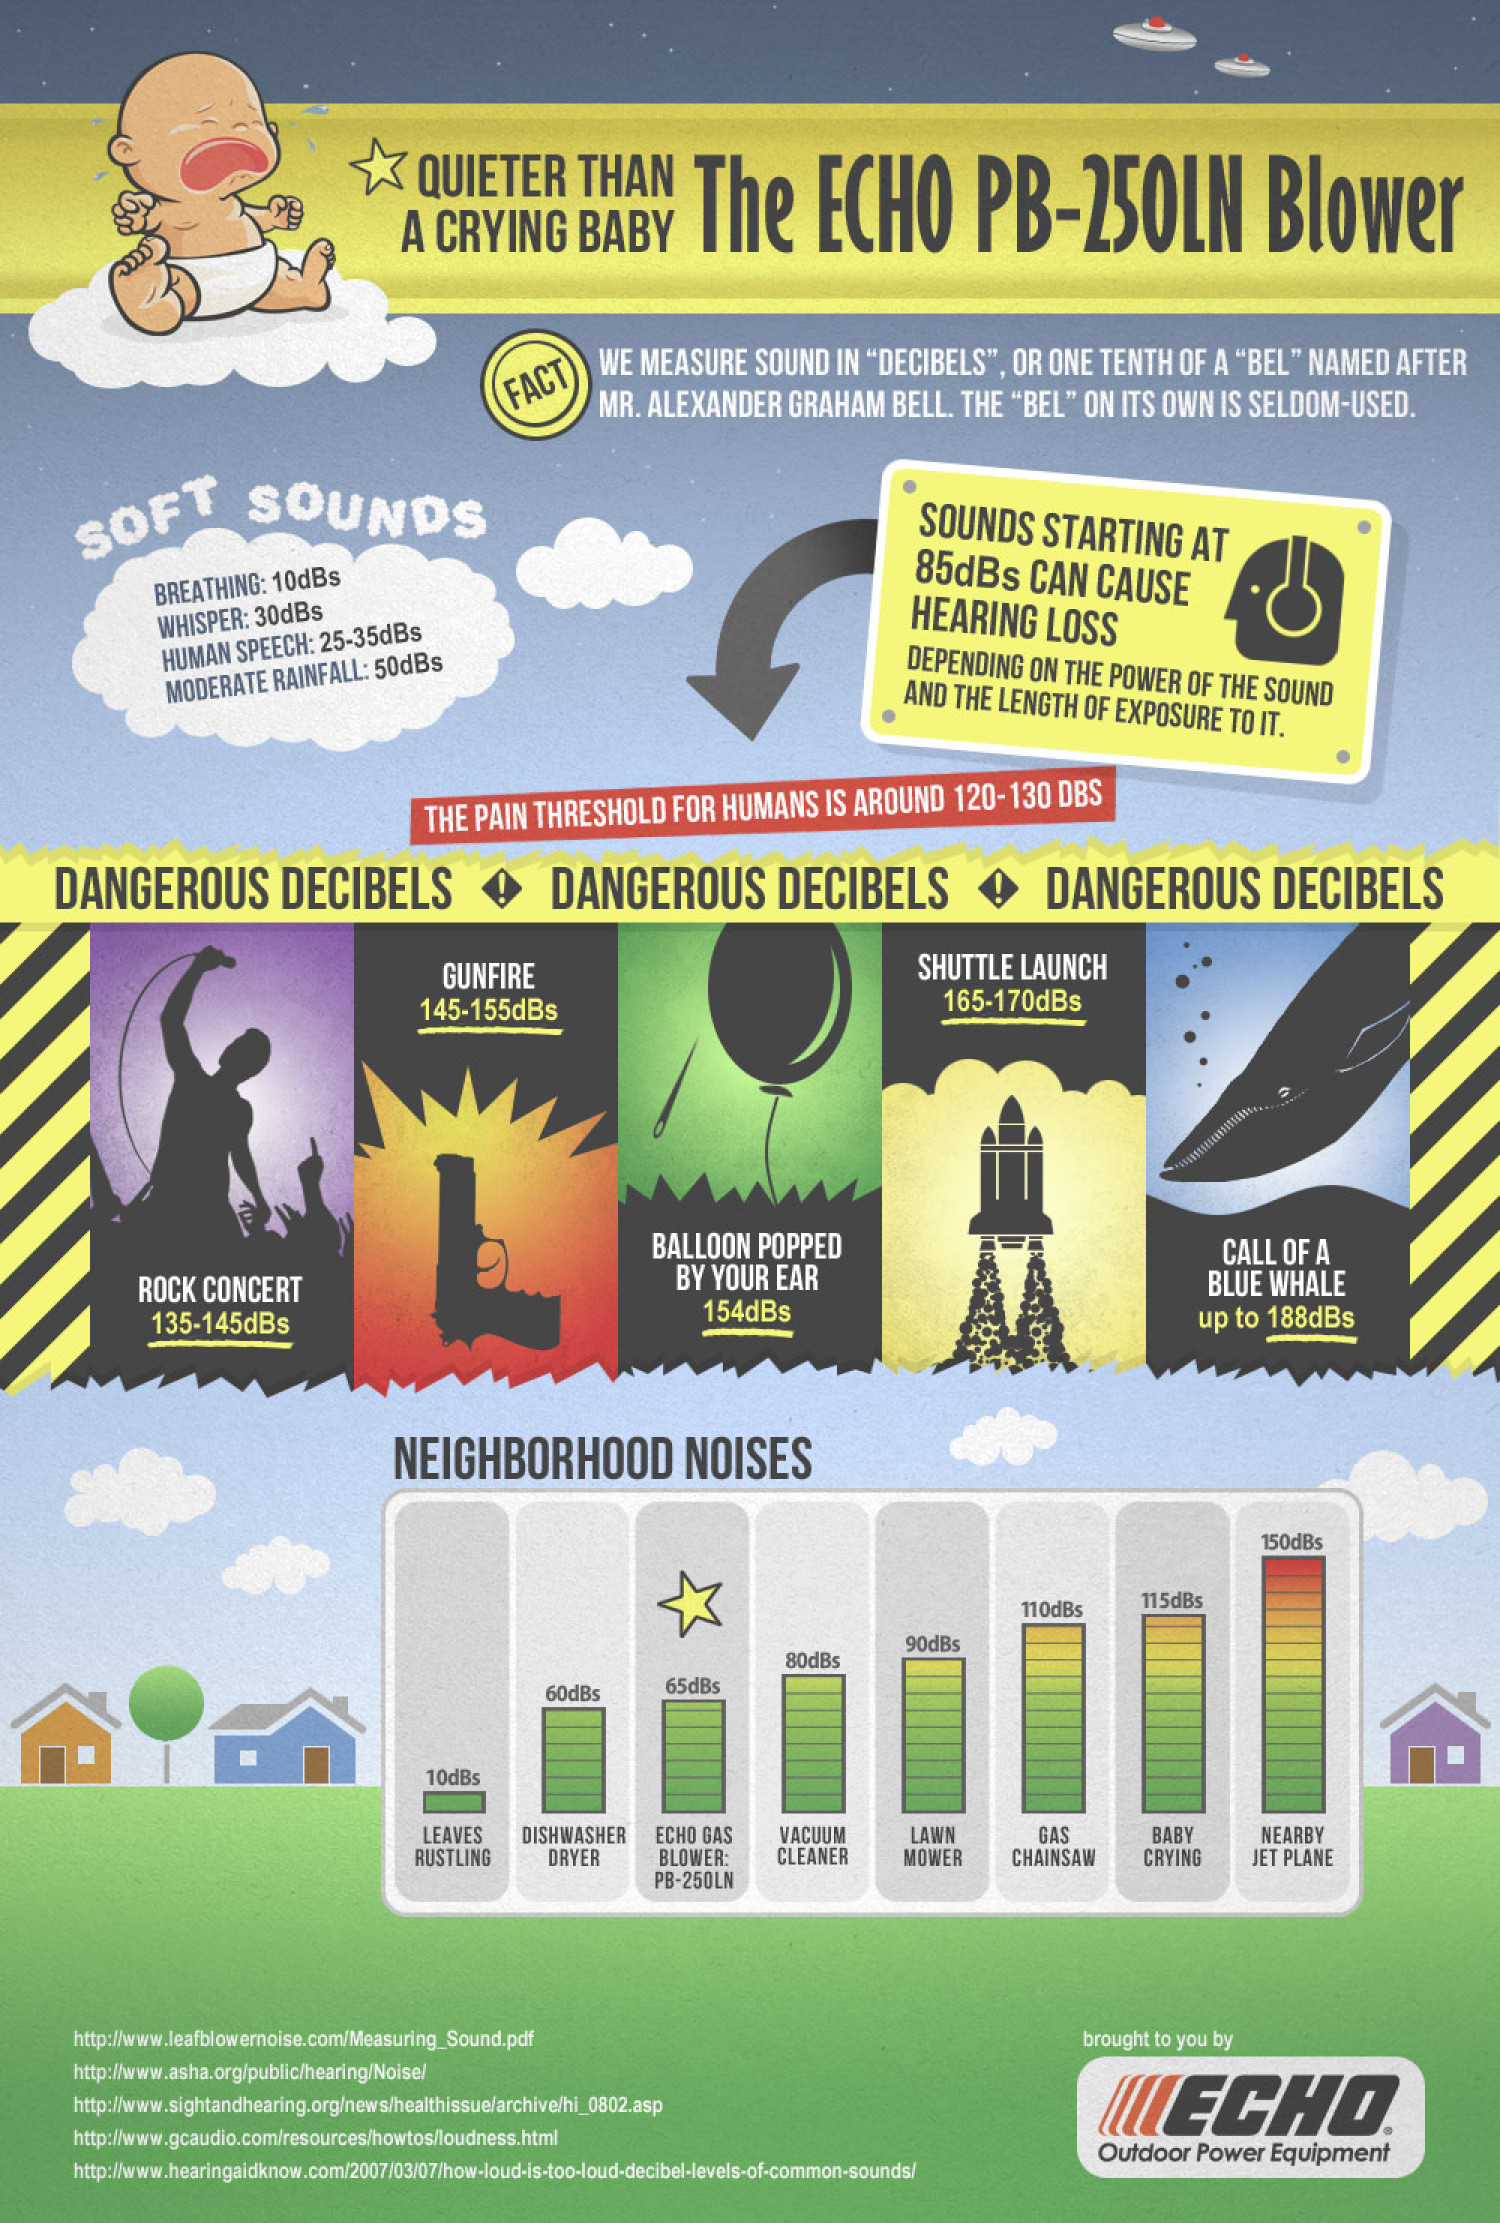 Quieter than a Crying Baby: the ECHO PB-250LN Blower Infographic